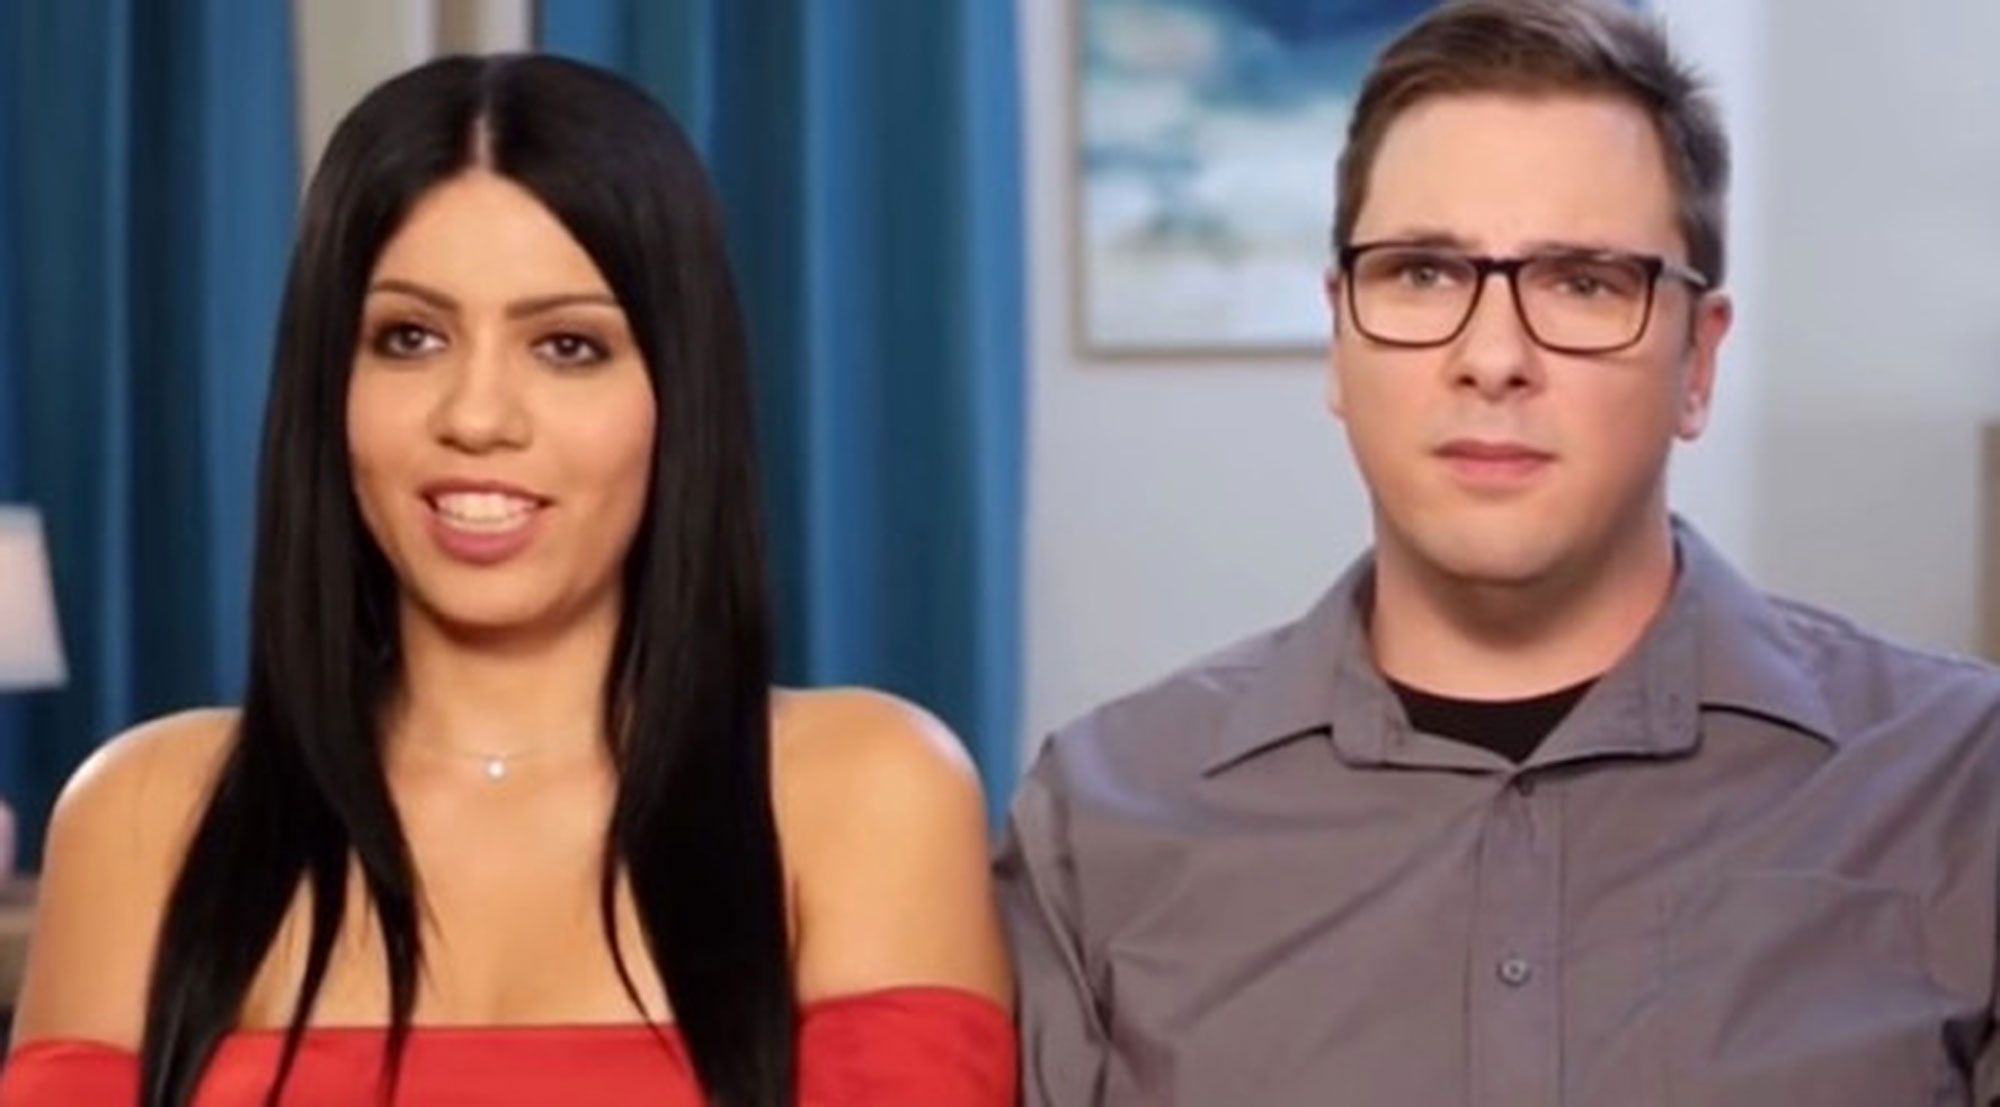 90 Day Fiance's Larissa Dos Santos Lima Arrested for Domestic Battery After Alleged Fight With Colt Johnson - Larissa Dos Santos and Colt Johnson